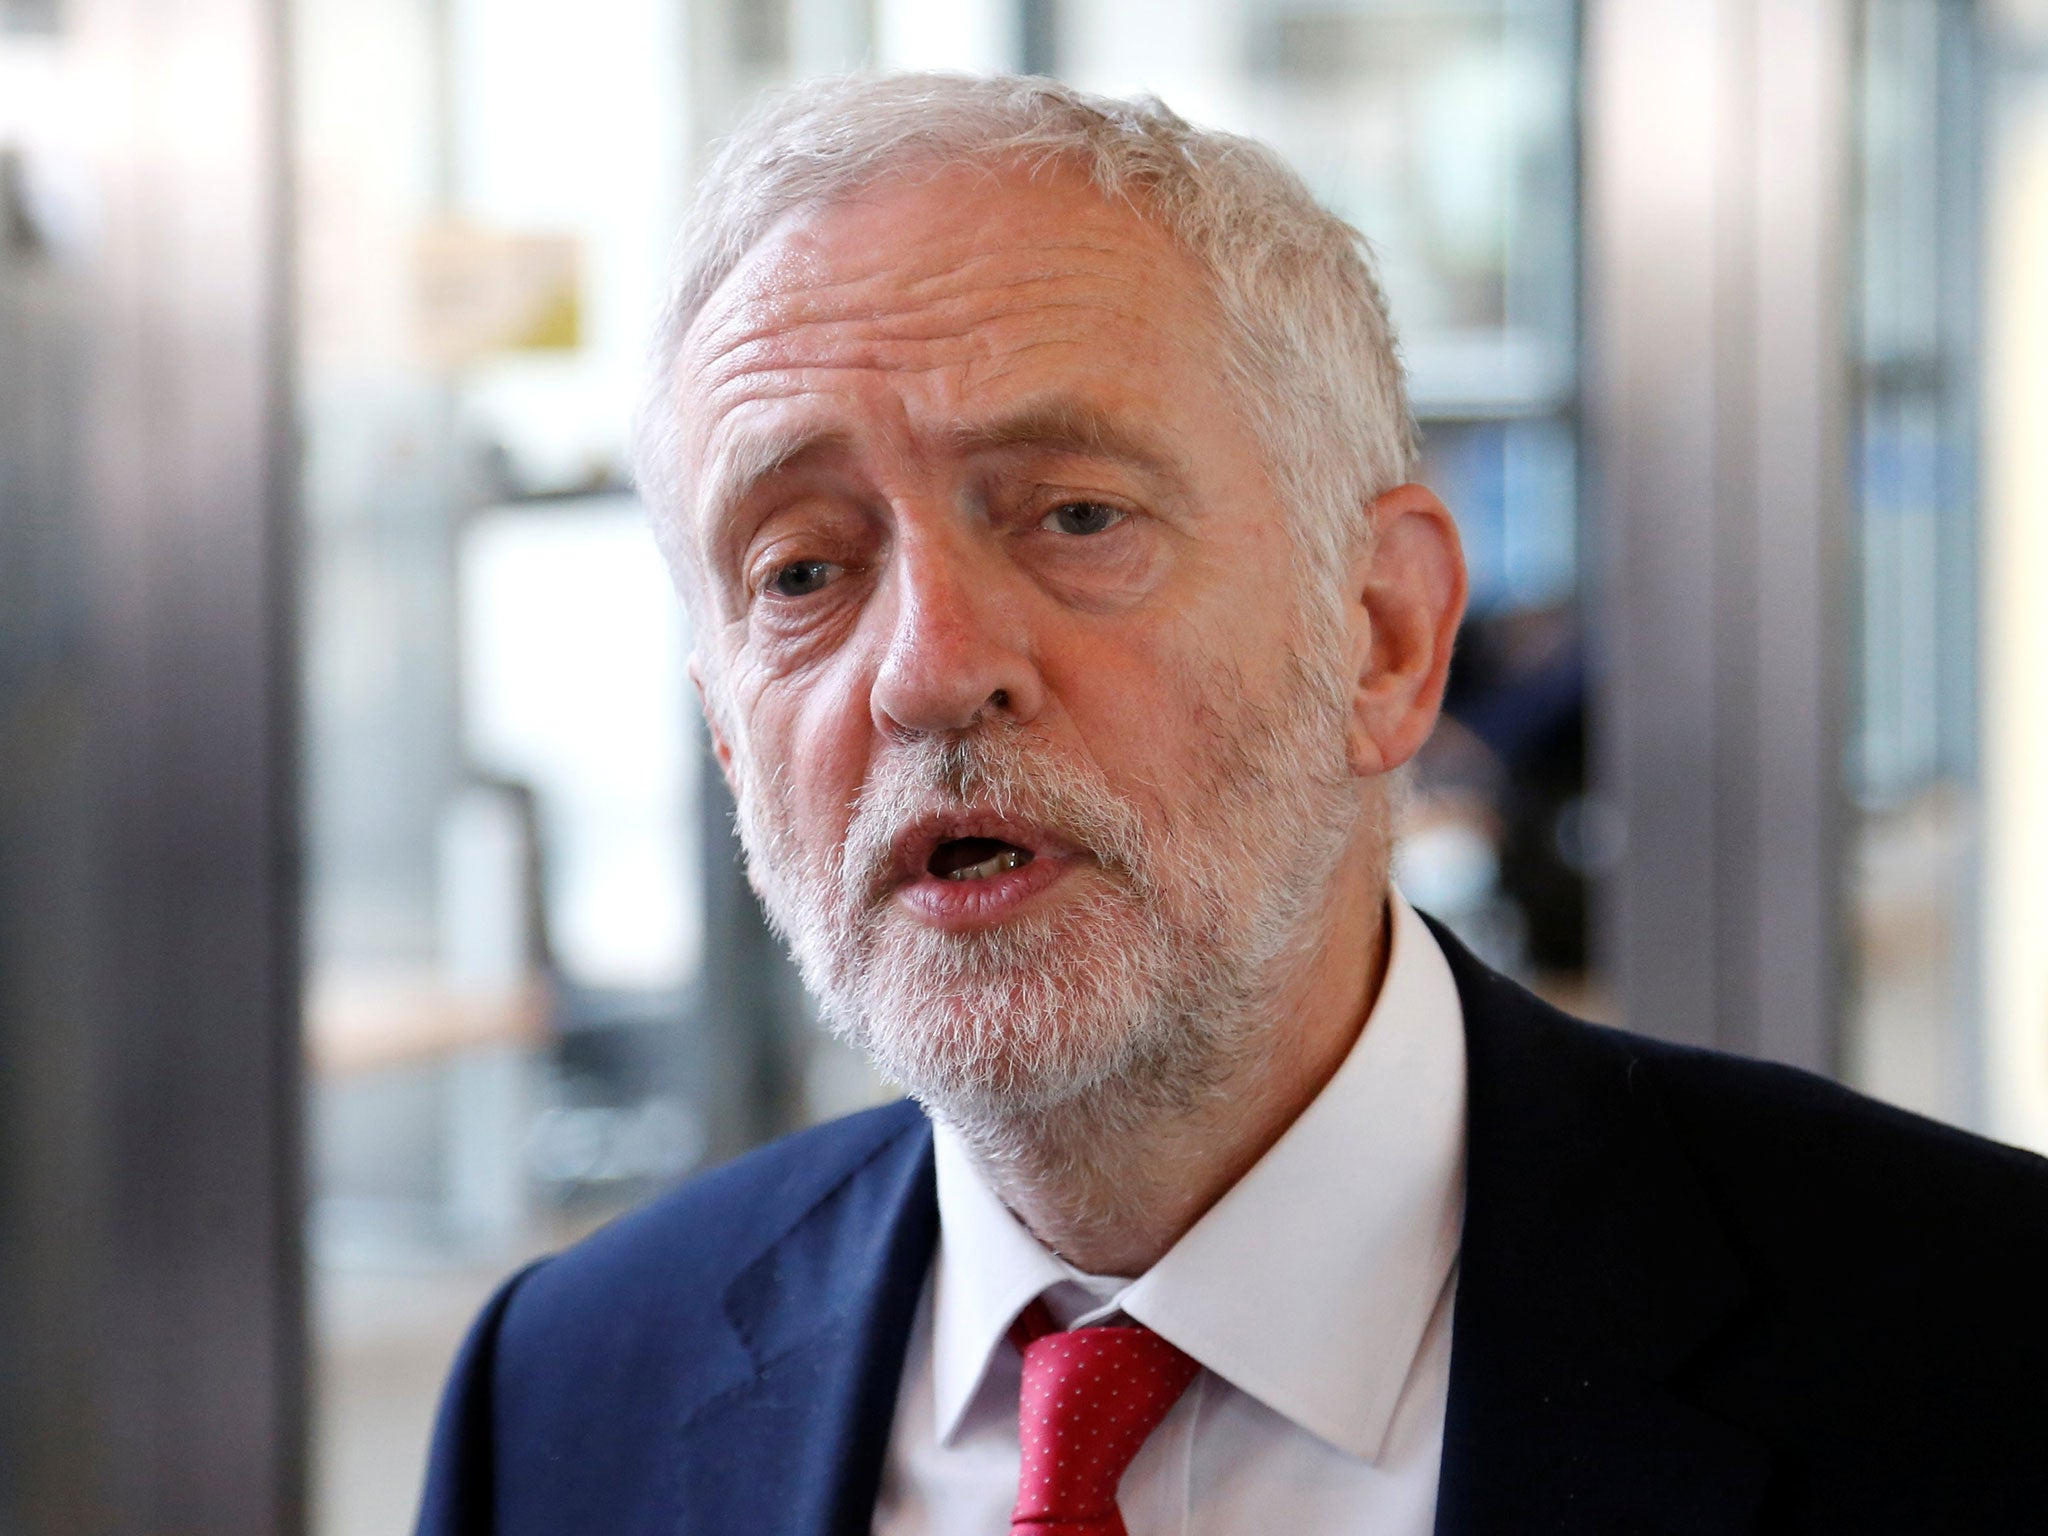 Corbyn says Grenfell fire sent 'terrible message' to world about social inequality in UK